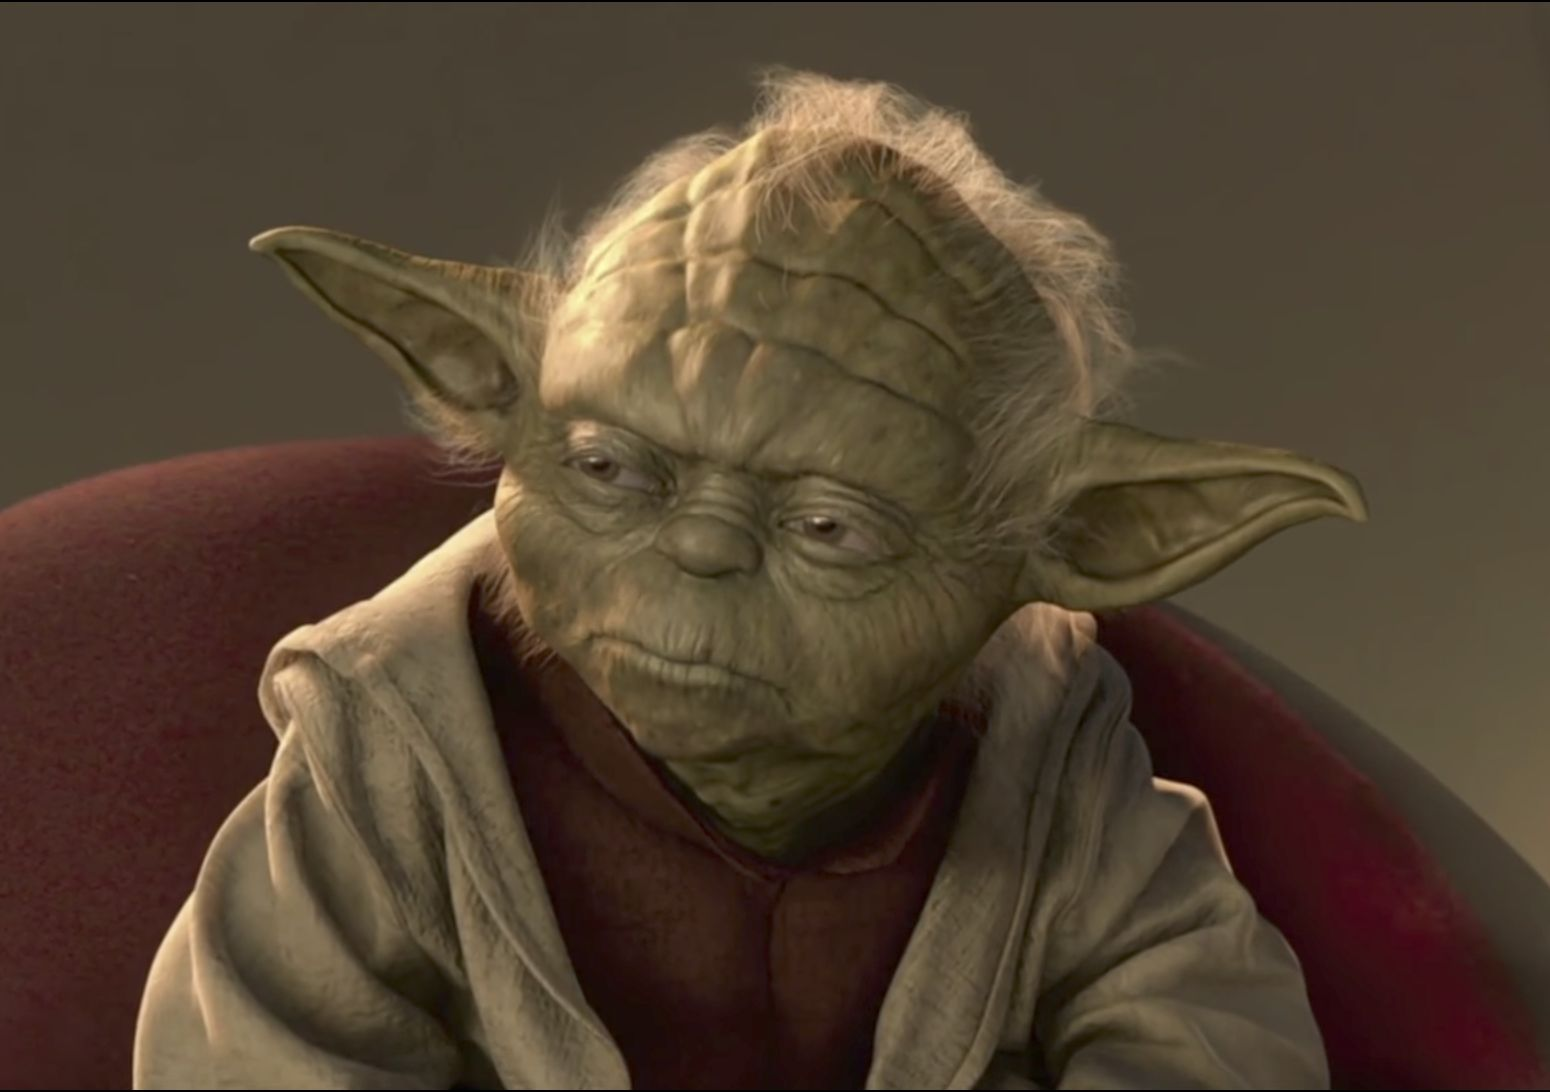 Yoda is pretty bummed out about how many launchers he needs to enjoy PC gaming.